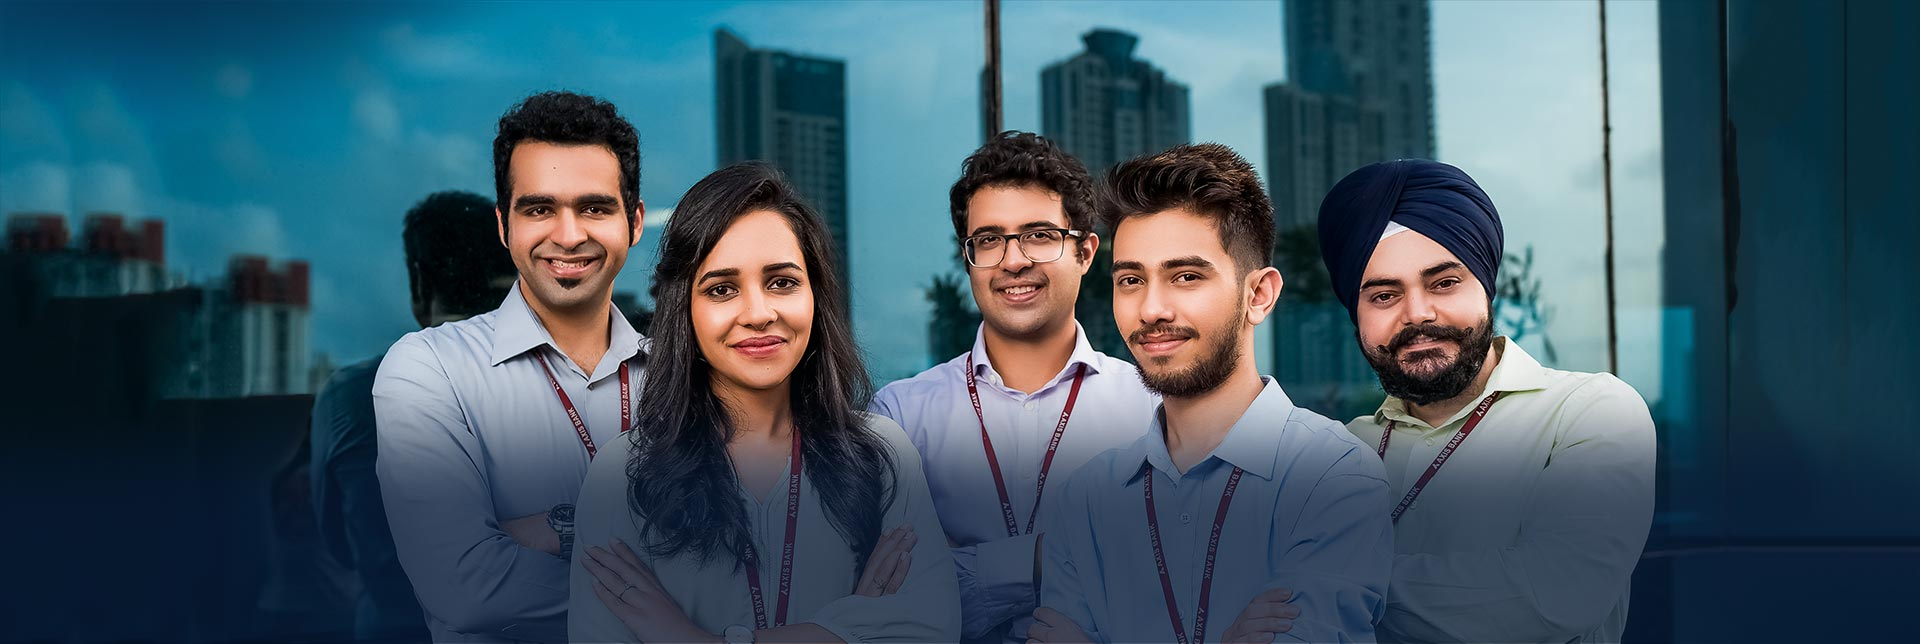 Career at Axis Bank - Find All the Job Openings